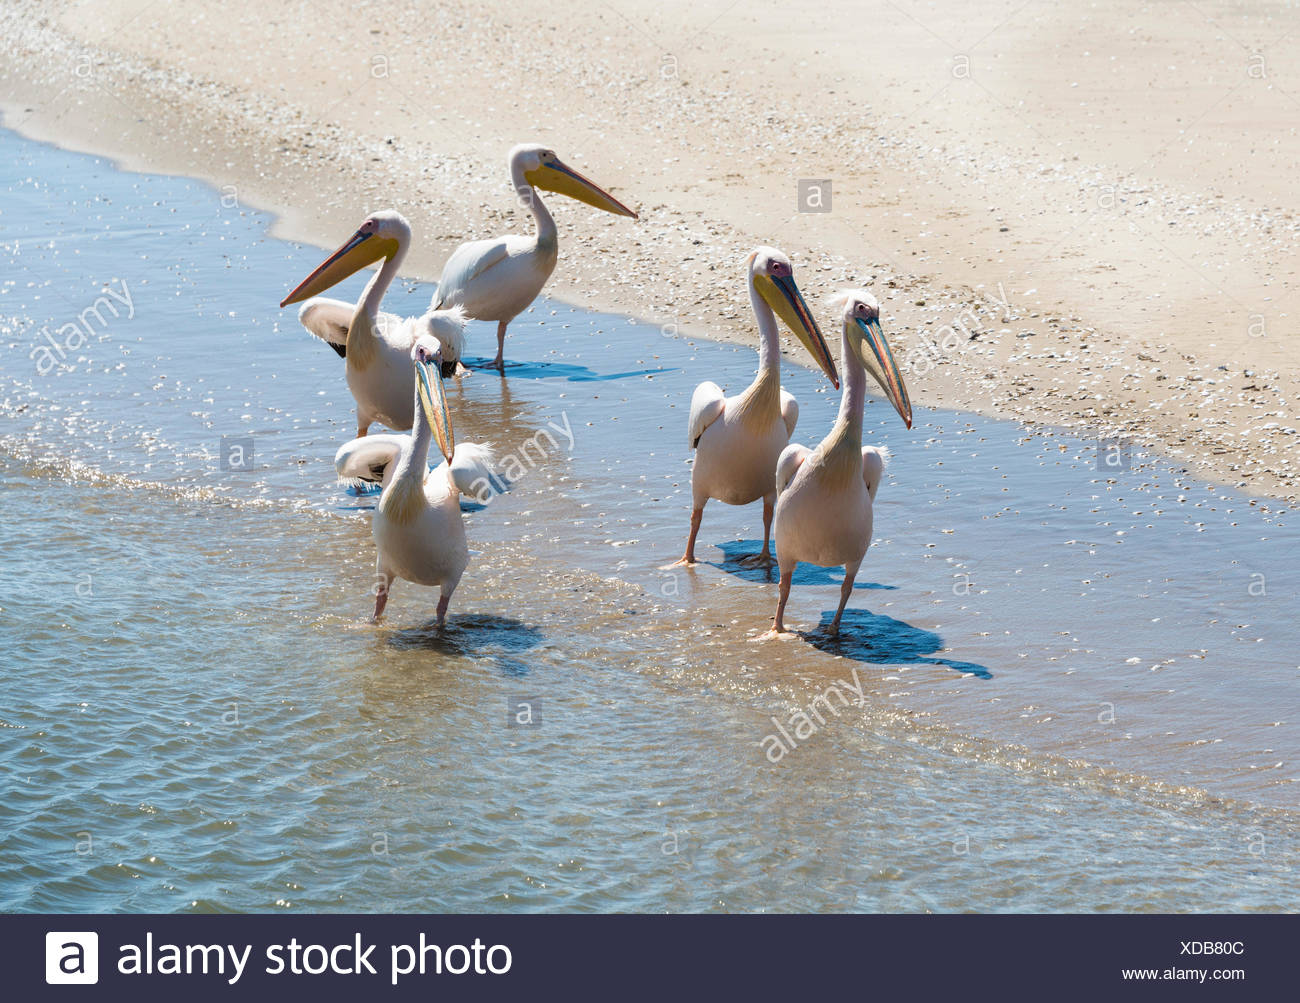 White Pelicans (Pelecanus onocrotalus) in Walvis Bay, Namibia - Stock Image